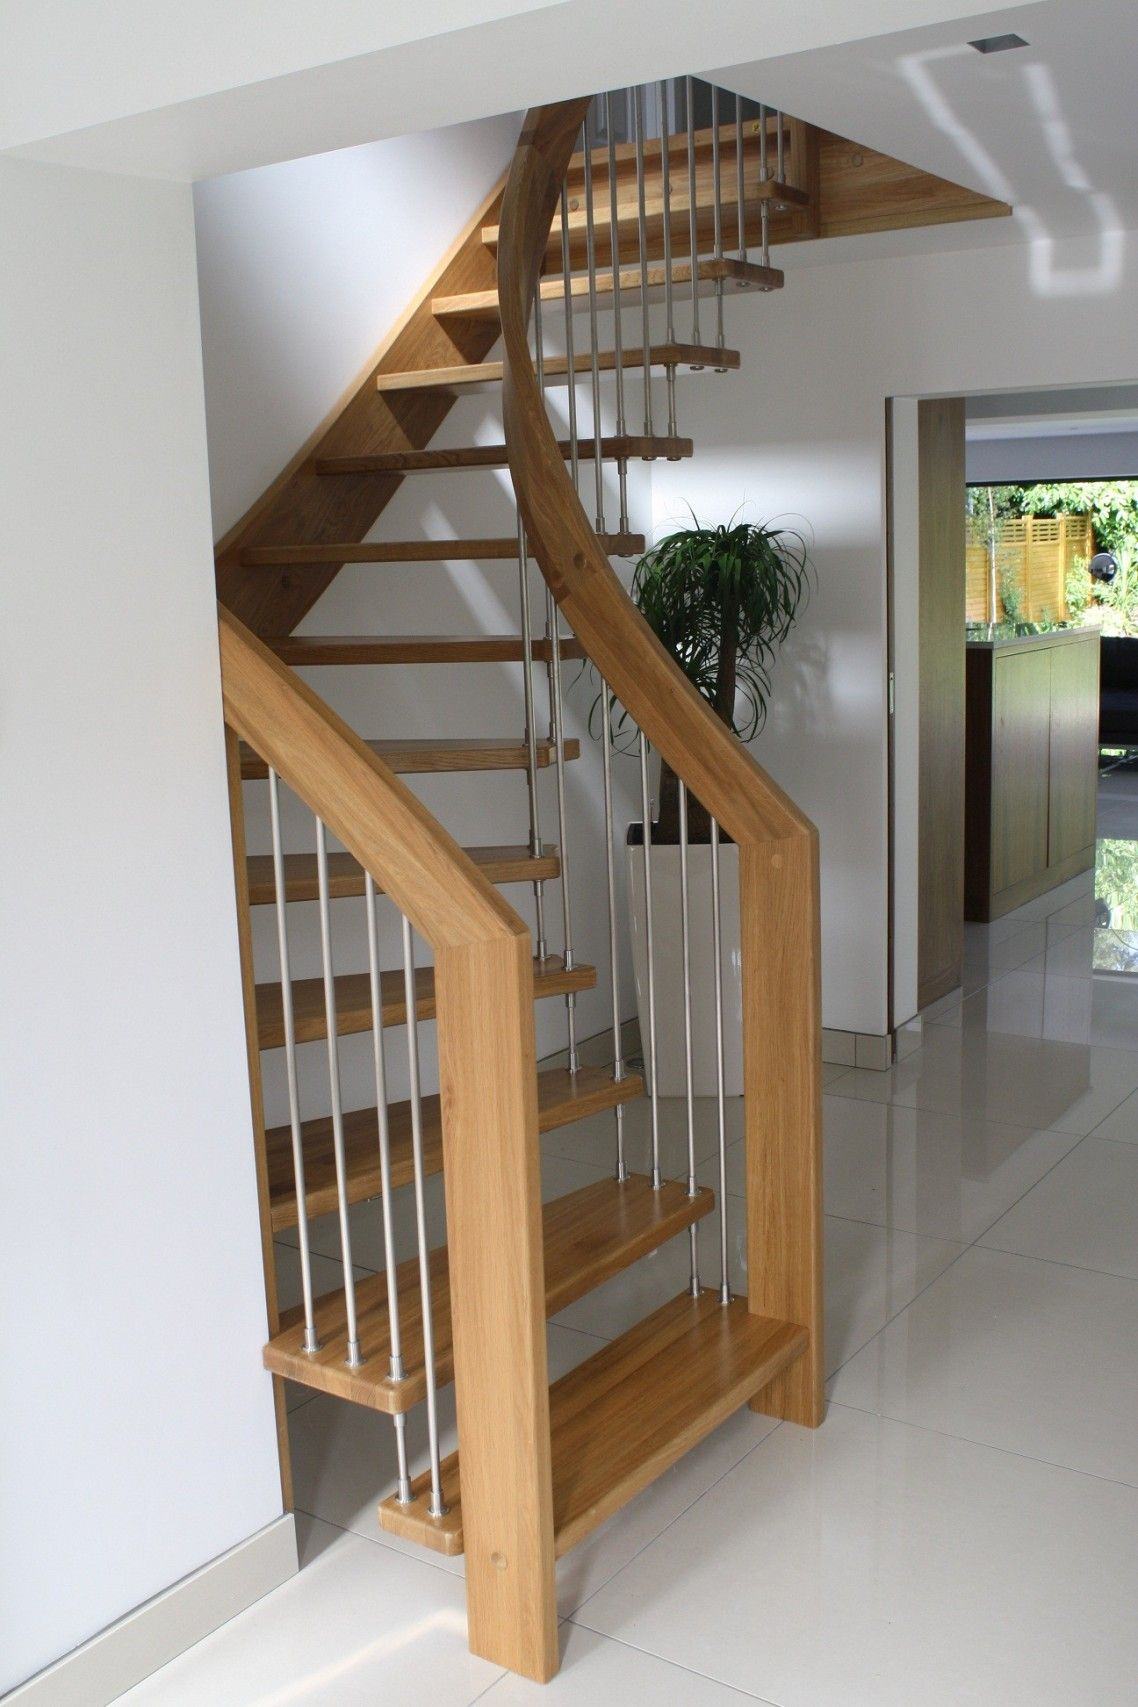 Alluring Design Ideas Of Small Space Staircase With Brown Wooden ...